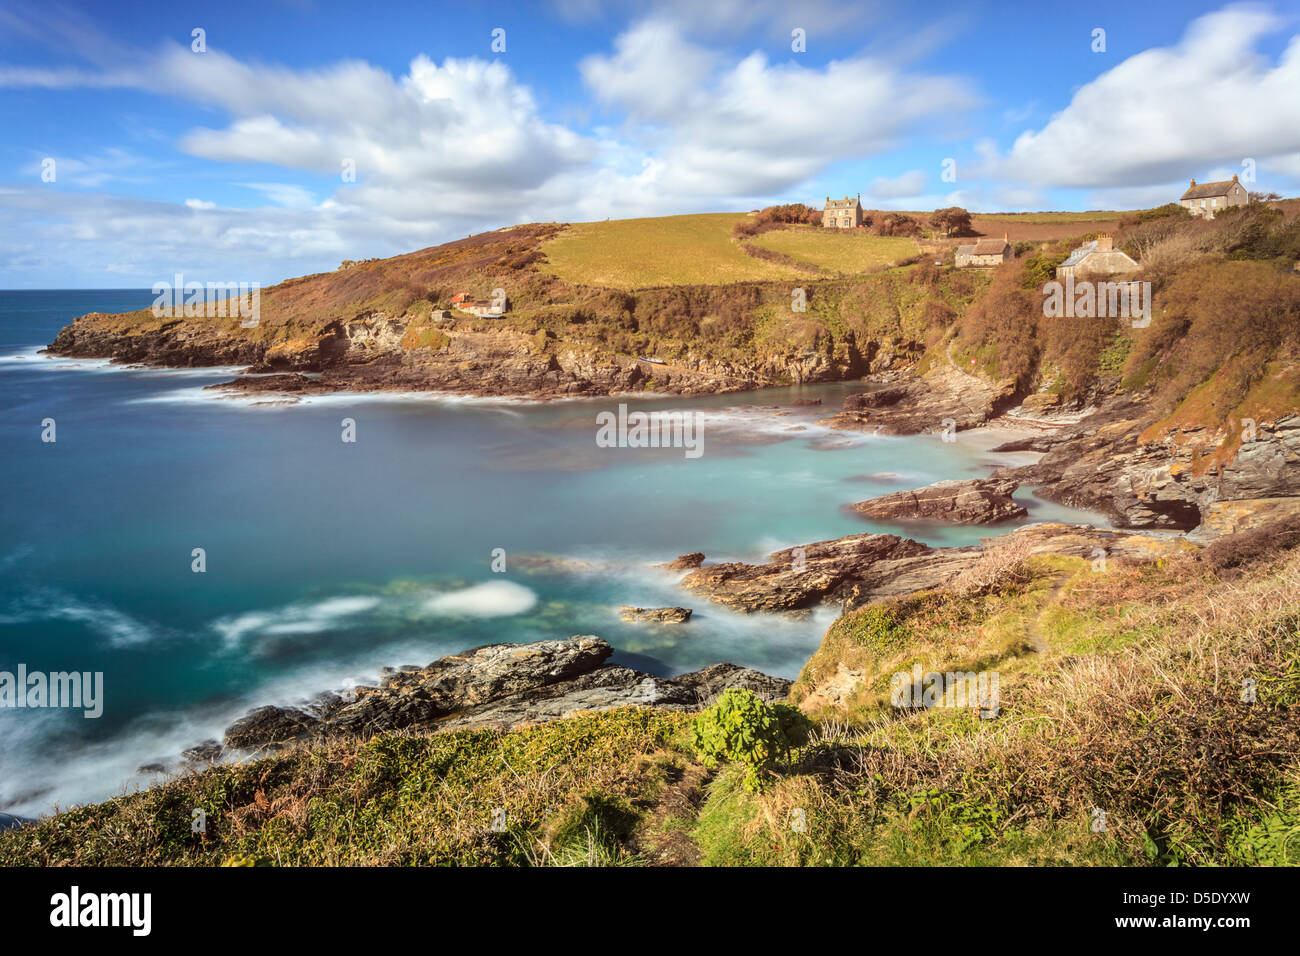 Cornwall's Prussia Cove captured using a long shutter speed to blur the movement in the sea and clouds - Stock Image